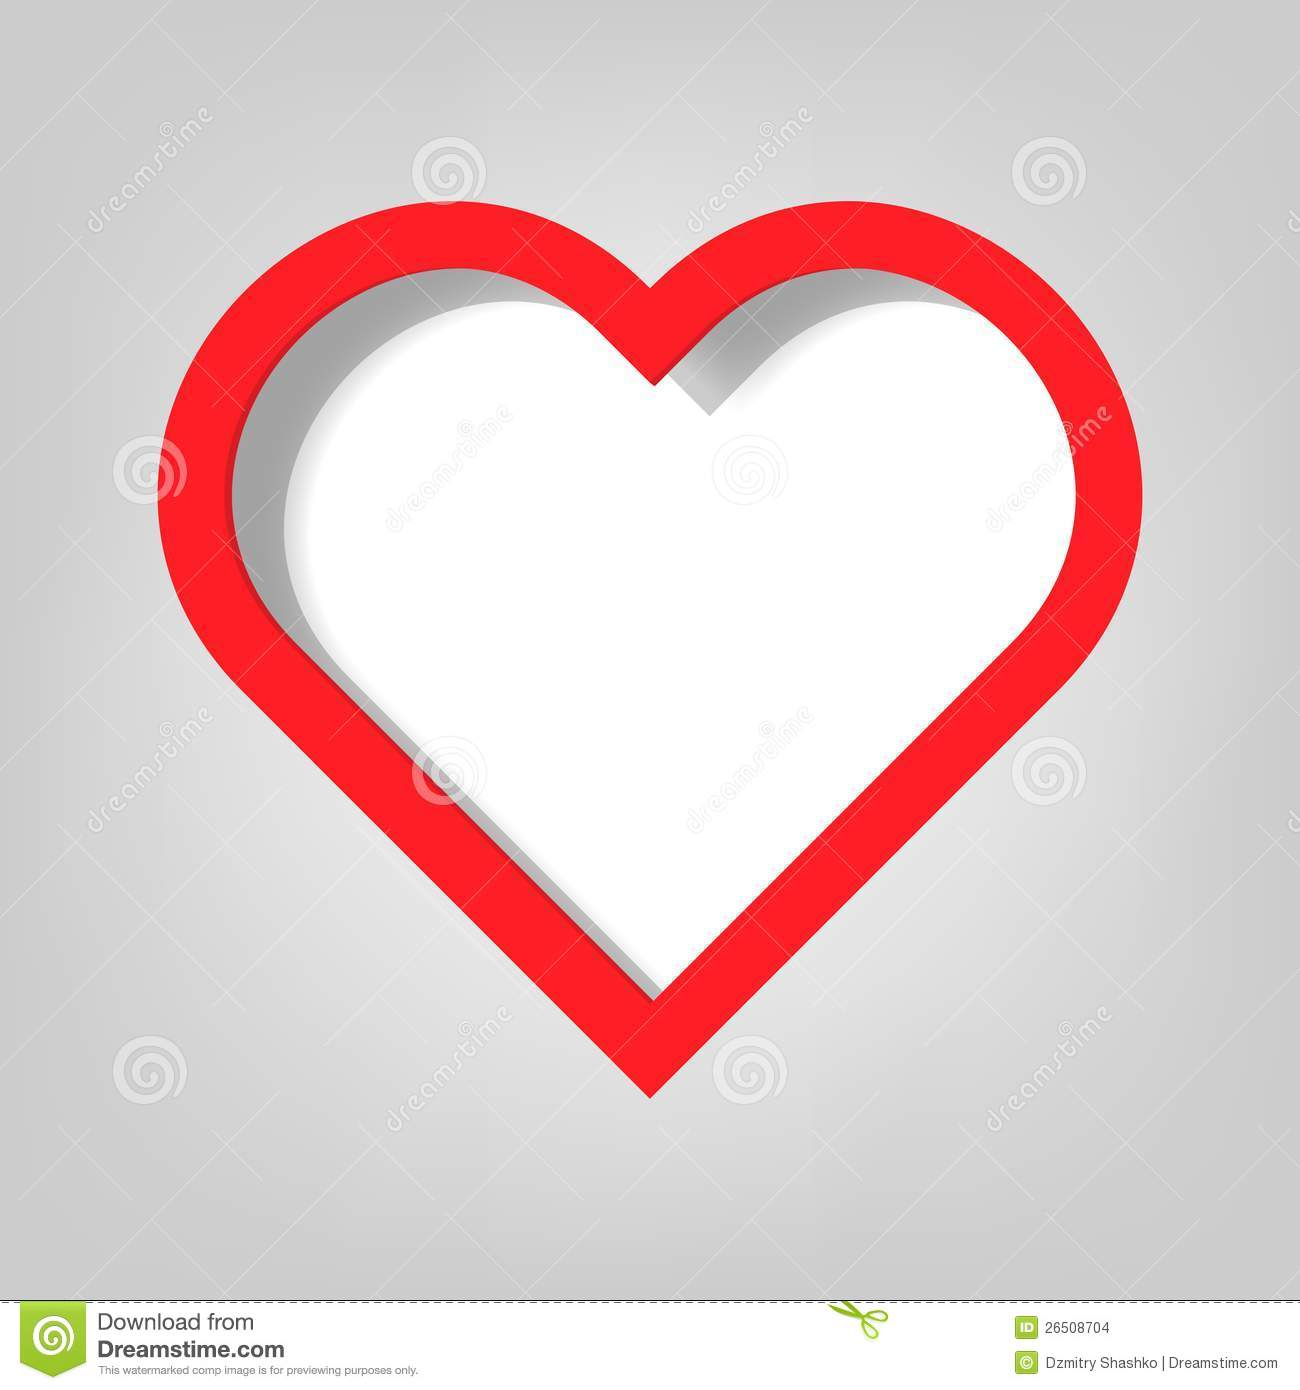 Poster Template. Heart Stock Images - Image: 26508704